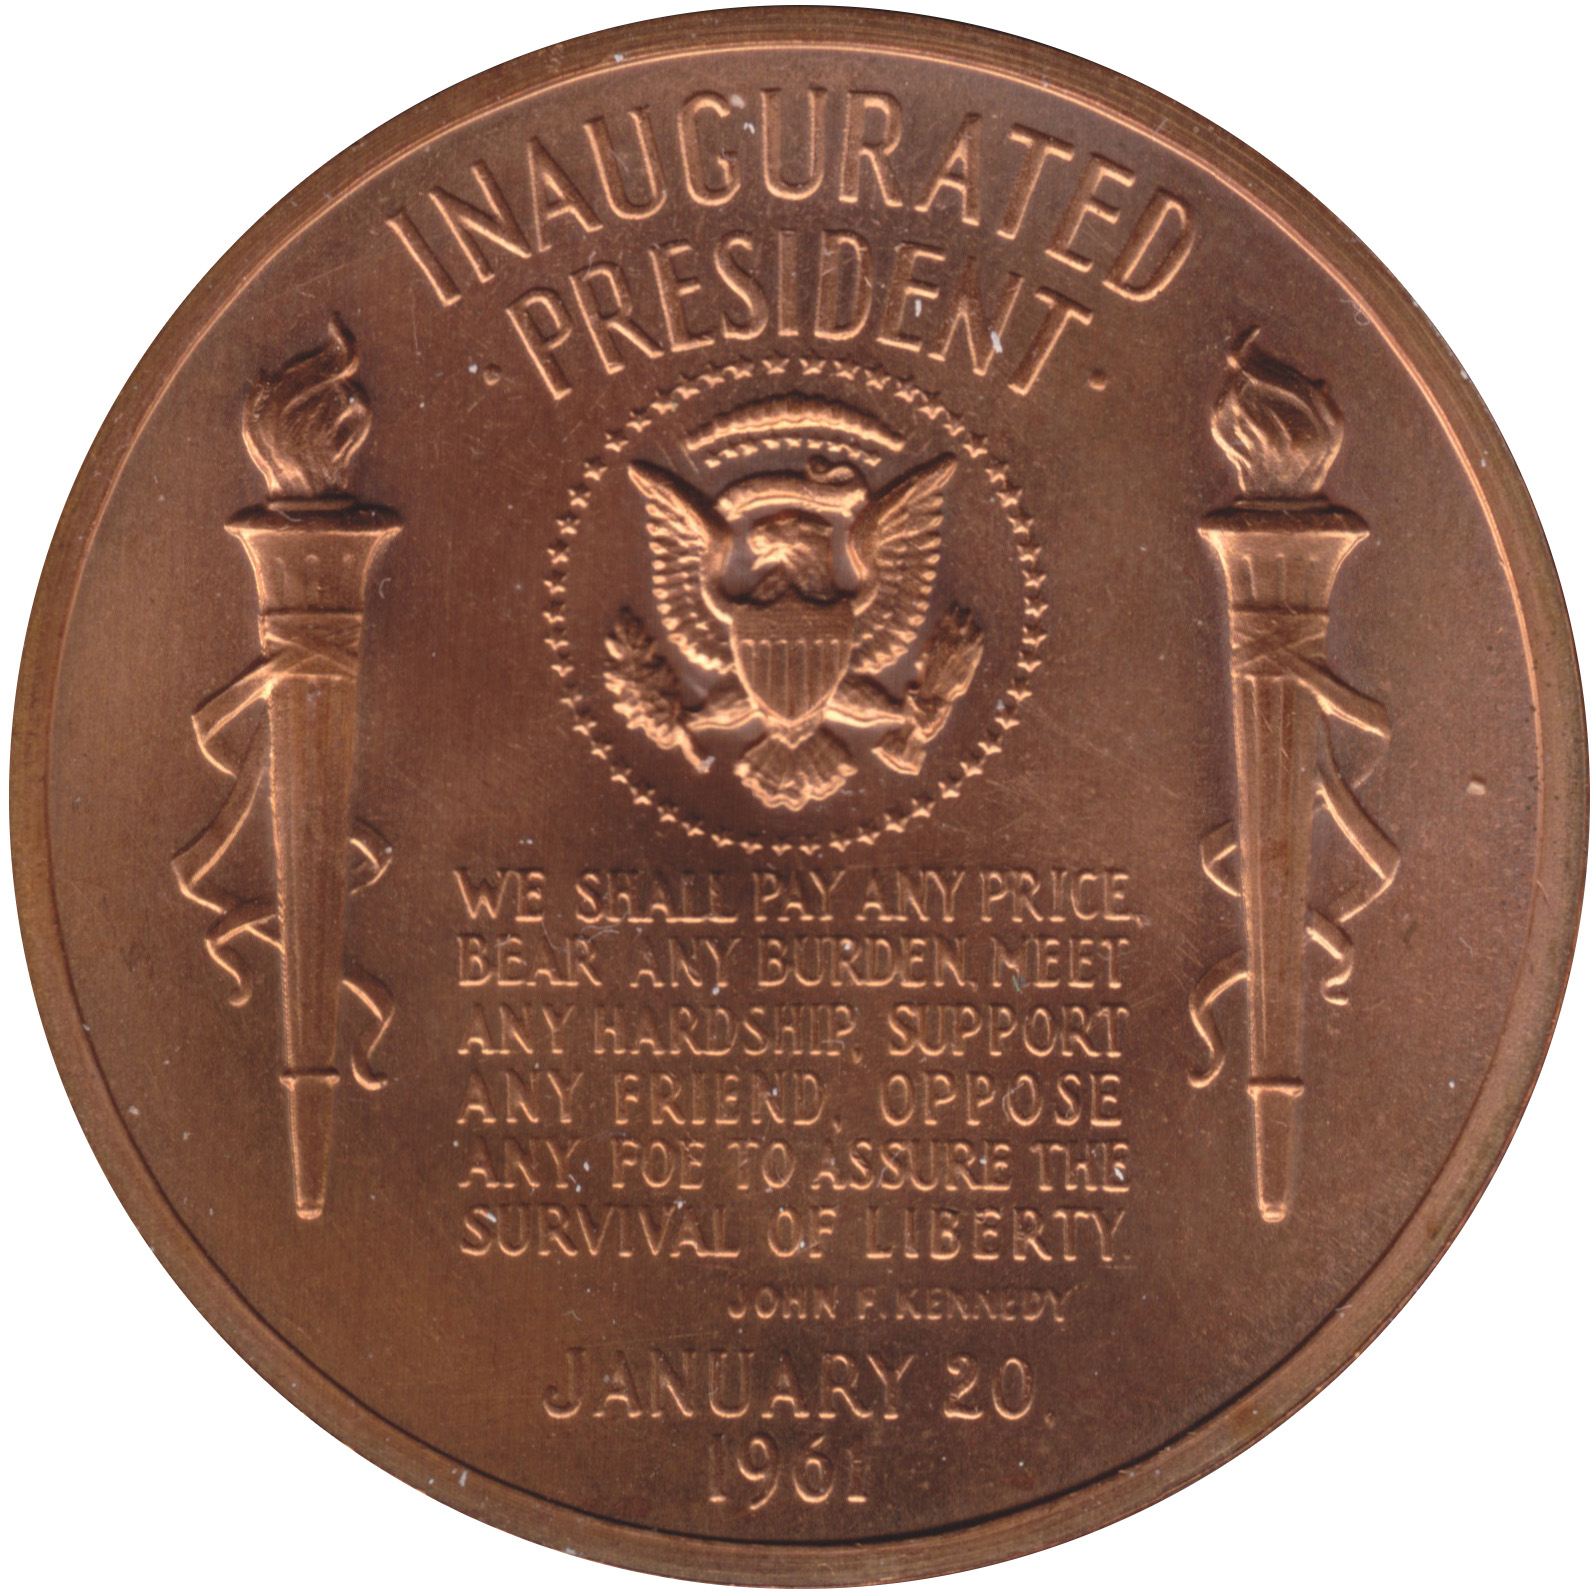 Reverse of Kennedy medal